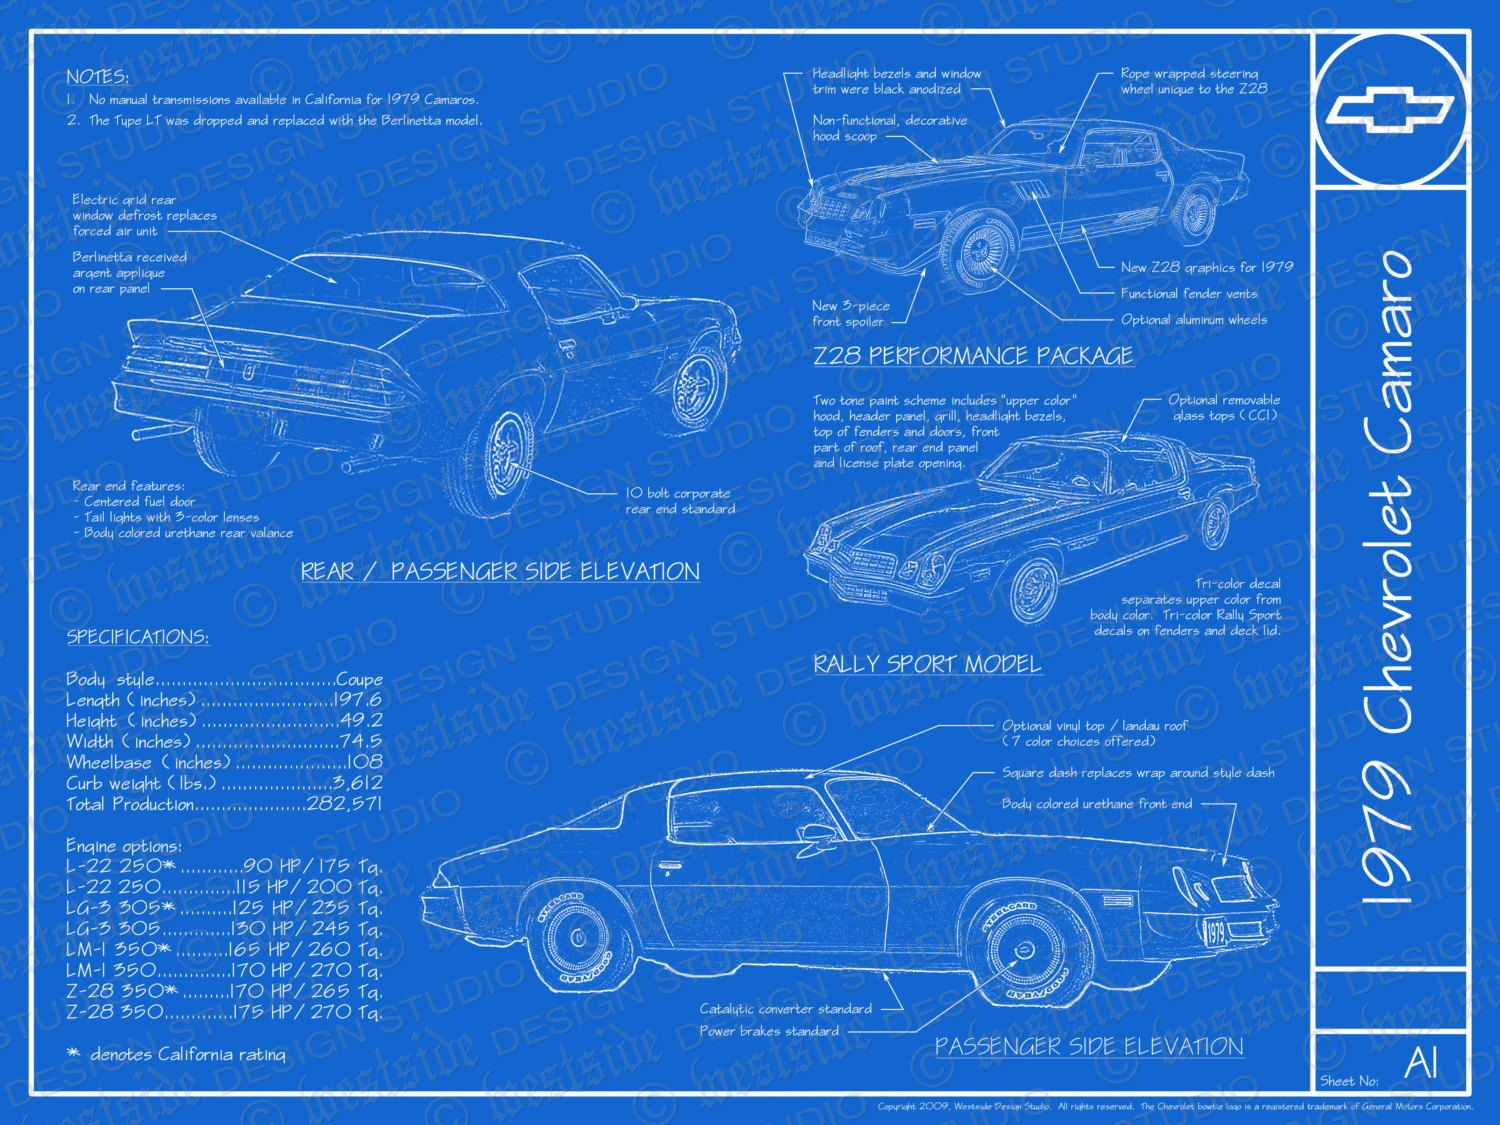 1979 Chevrolet Camaro Blueprint Poster 18x24 Jpeg Etsy In 2020 Chevrolet Camaro Camaro Blueprints